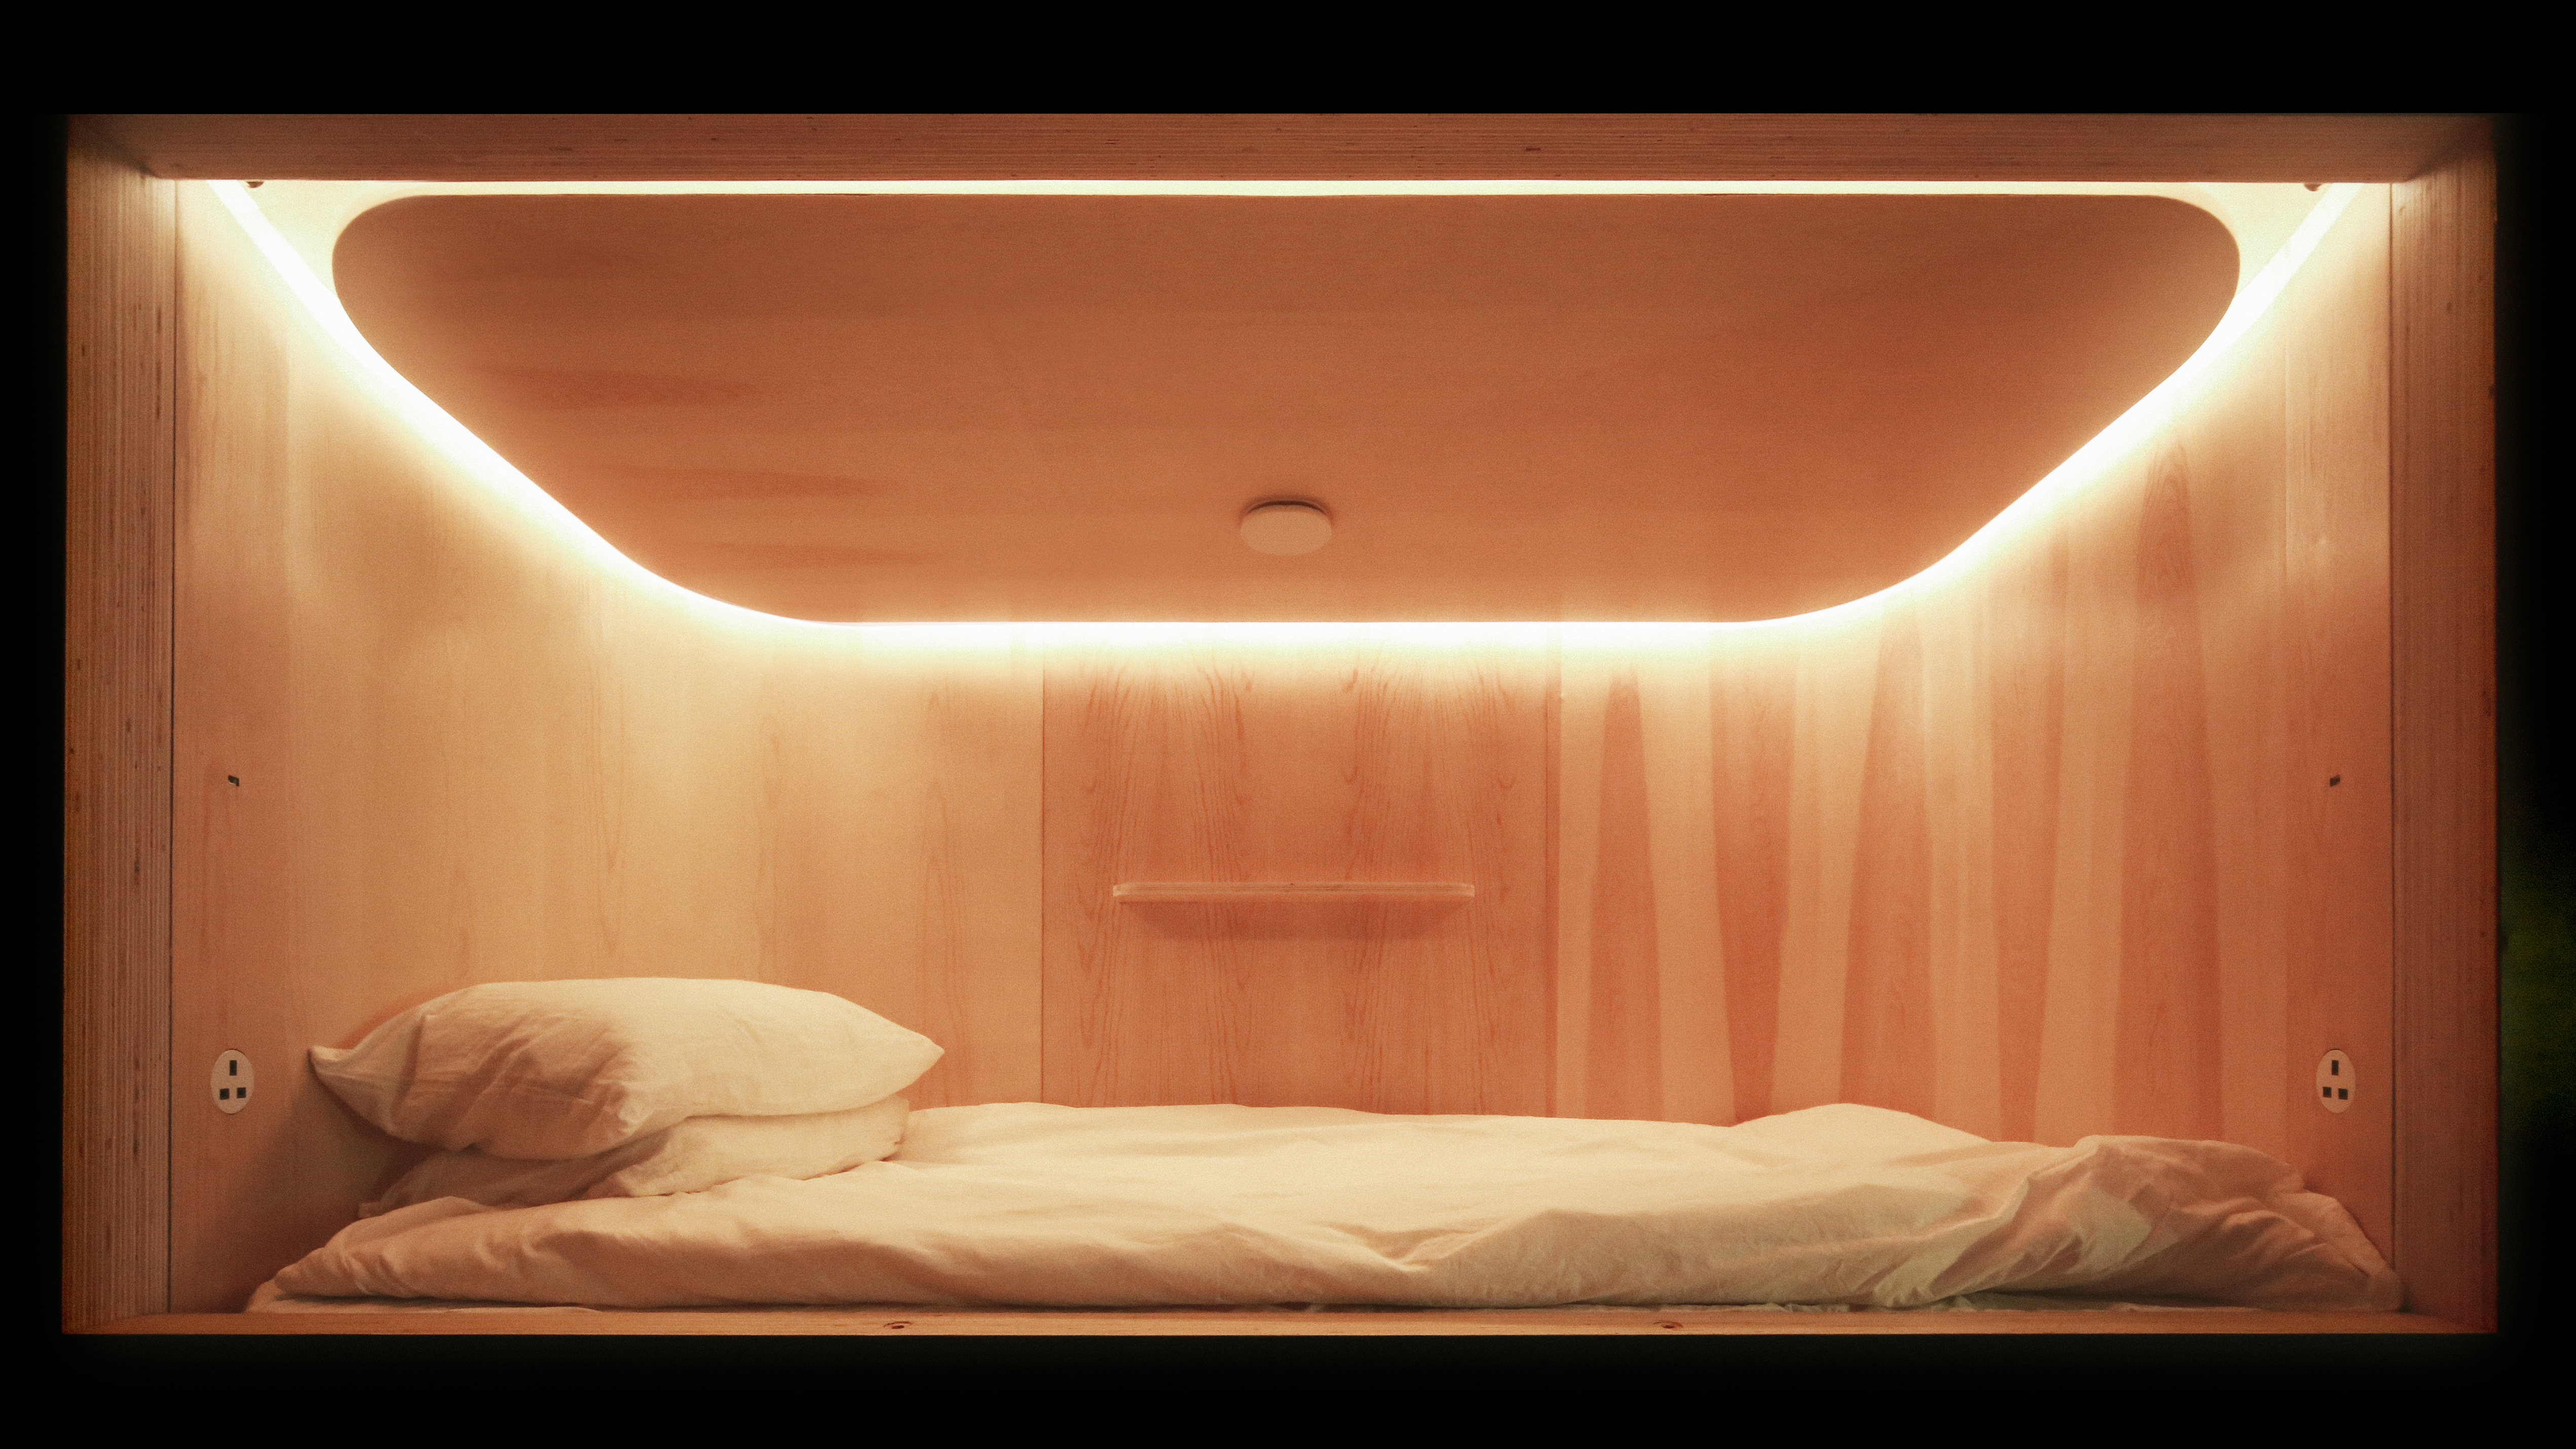 d4132ca2cdcb Hong Kong sleep capsules offer rest in a crowded city